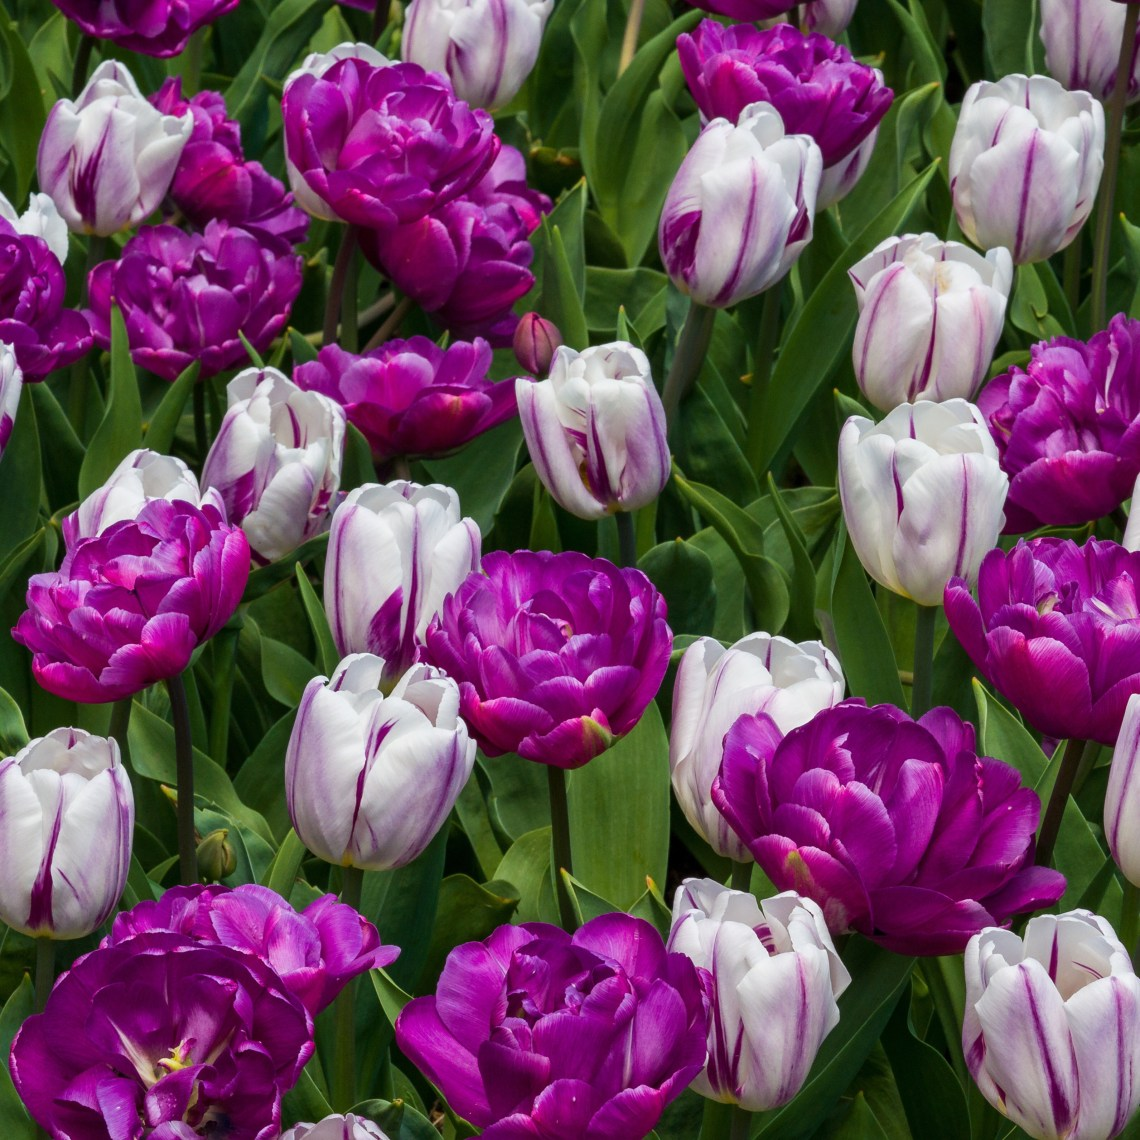 Purple Darwin Hybrid Tulips and Whites with Purple Stripes